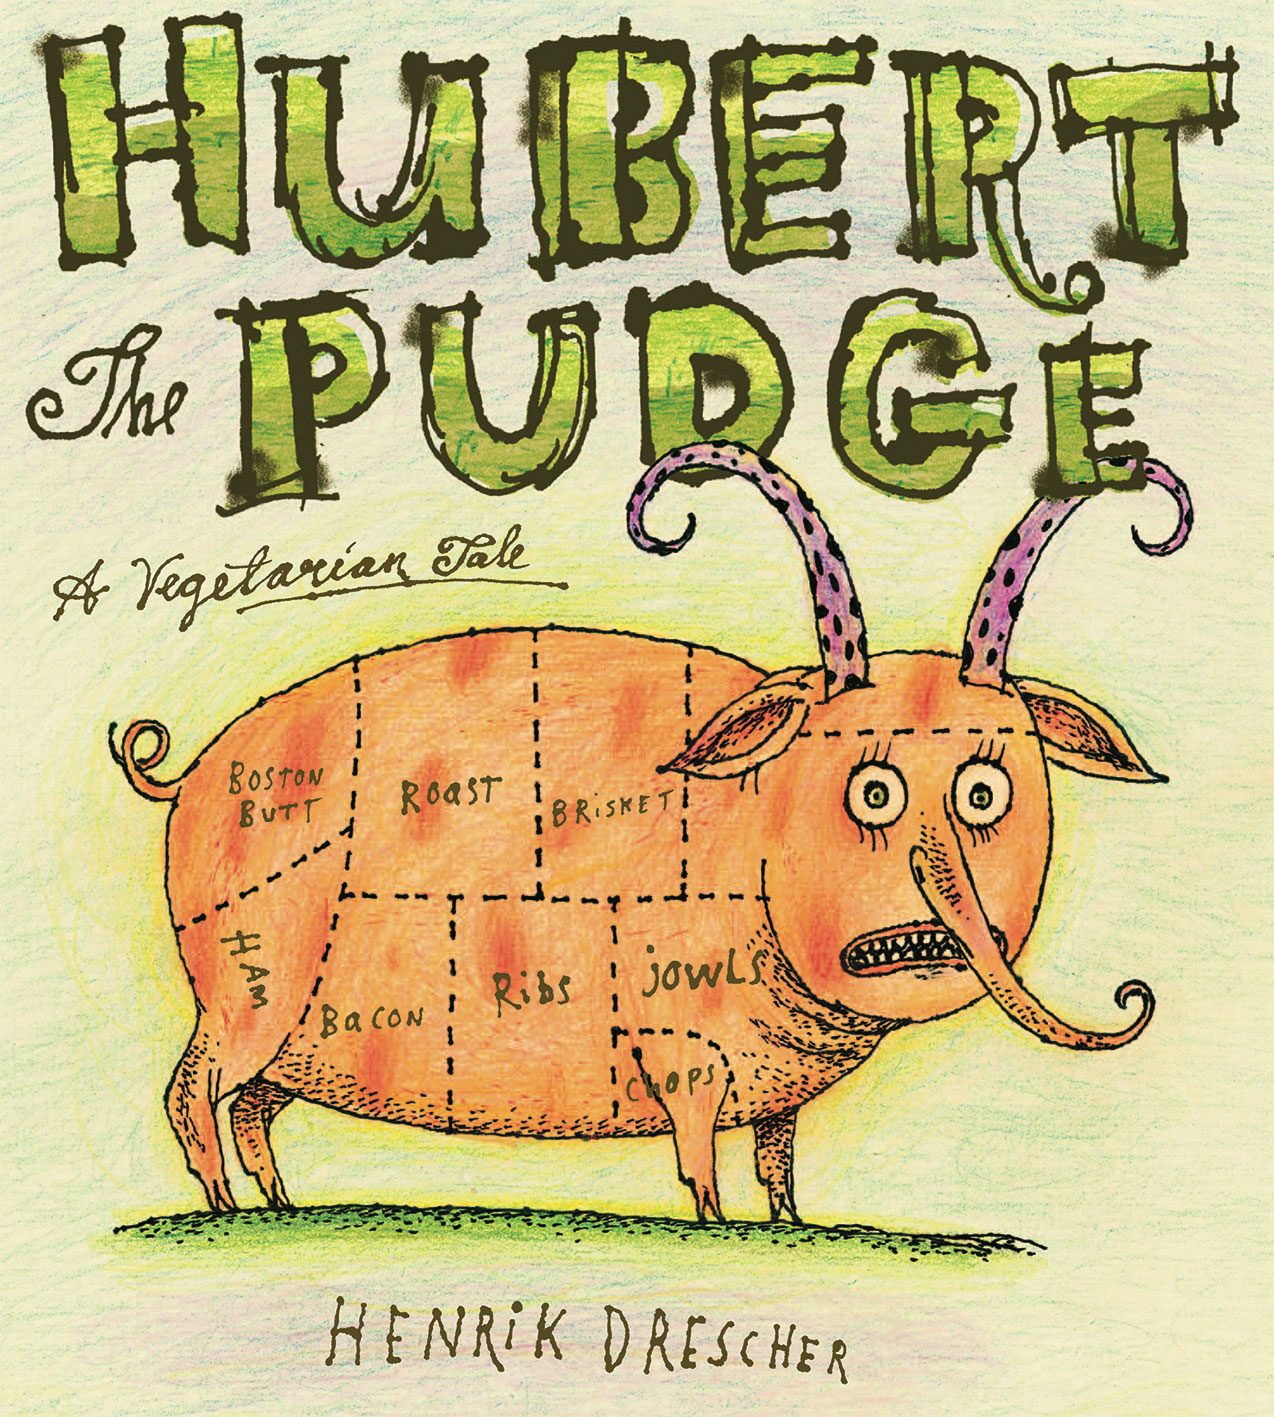 Hubert-the-Pudge